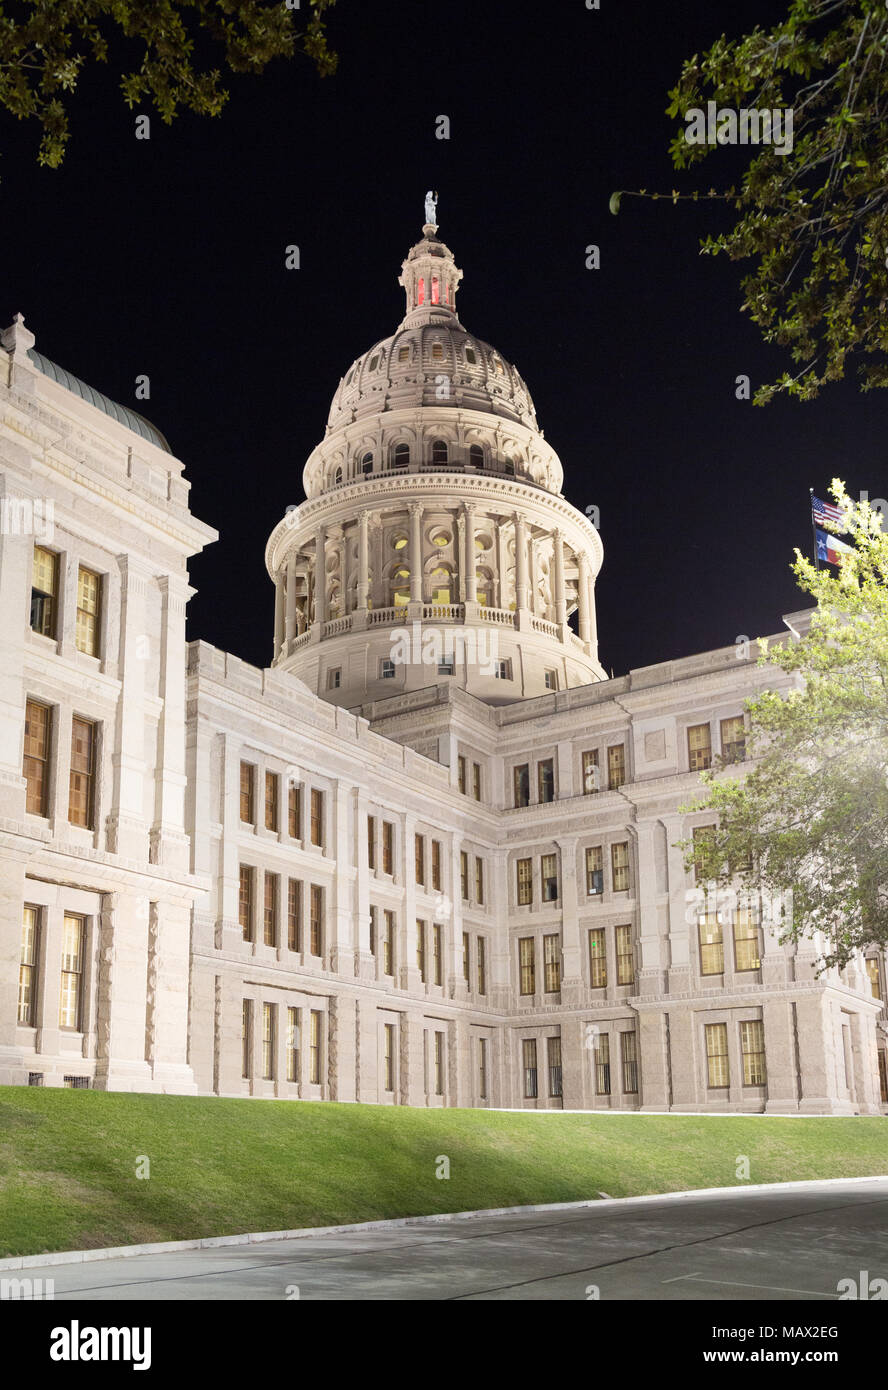 Texas State Capitol Building Lit Up At Night, Austin Texas, United States  Of America